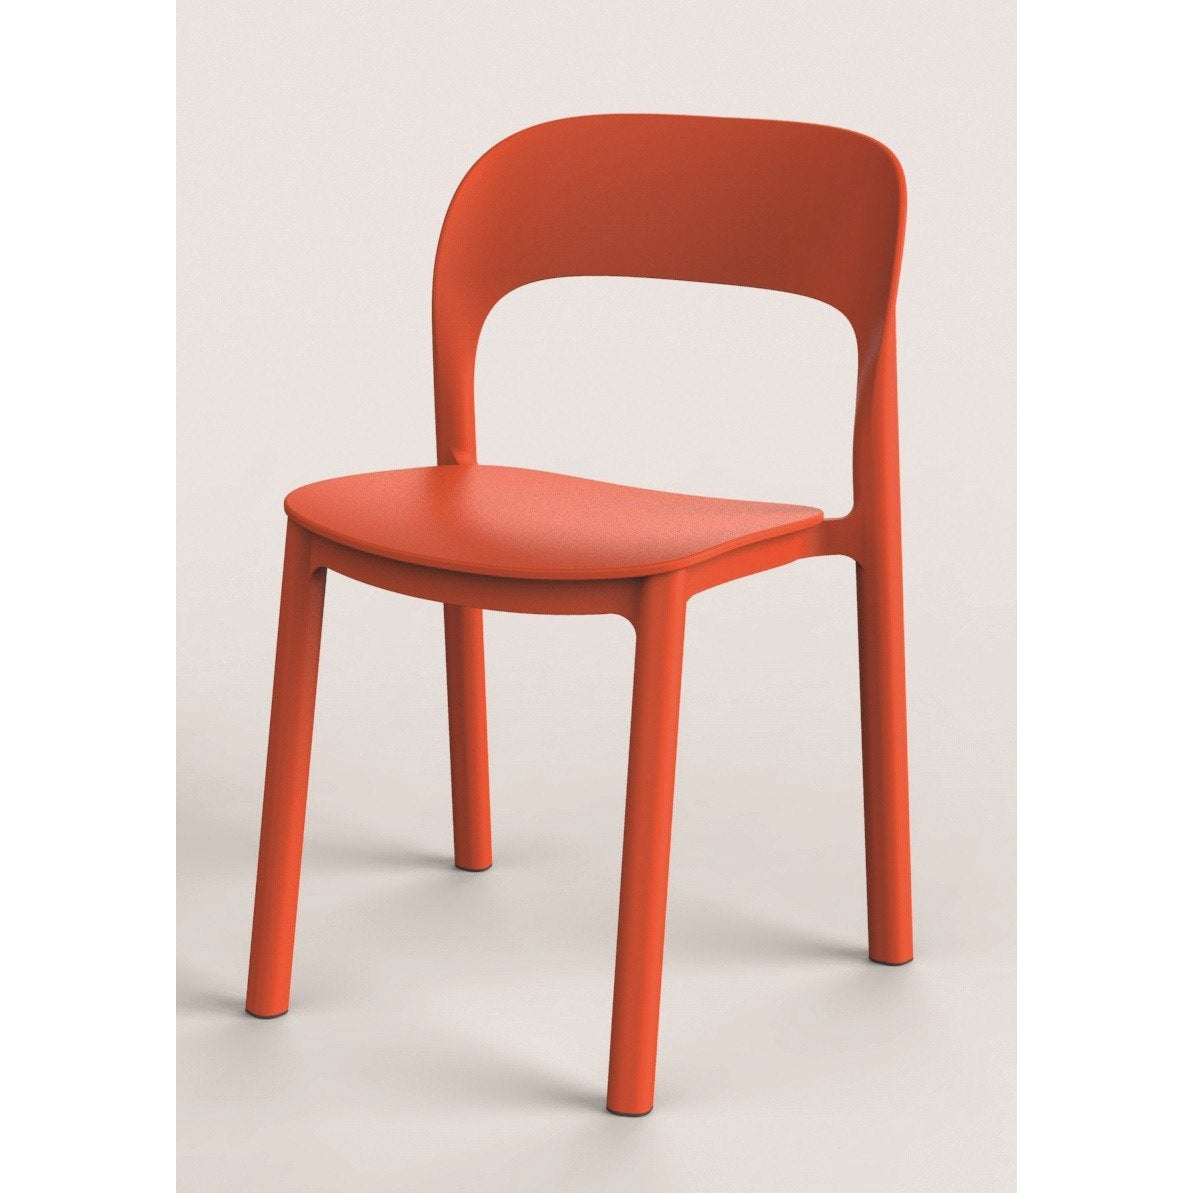 Chaise de jardin en r sine plastique ona orange leroy for Chaise de cuisine plastique